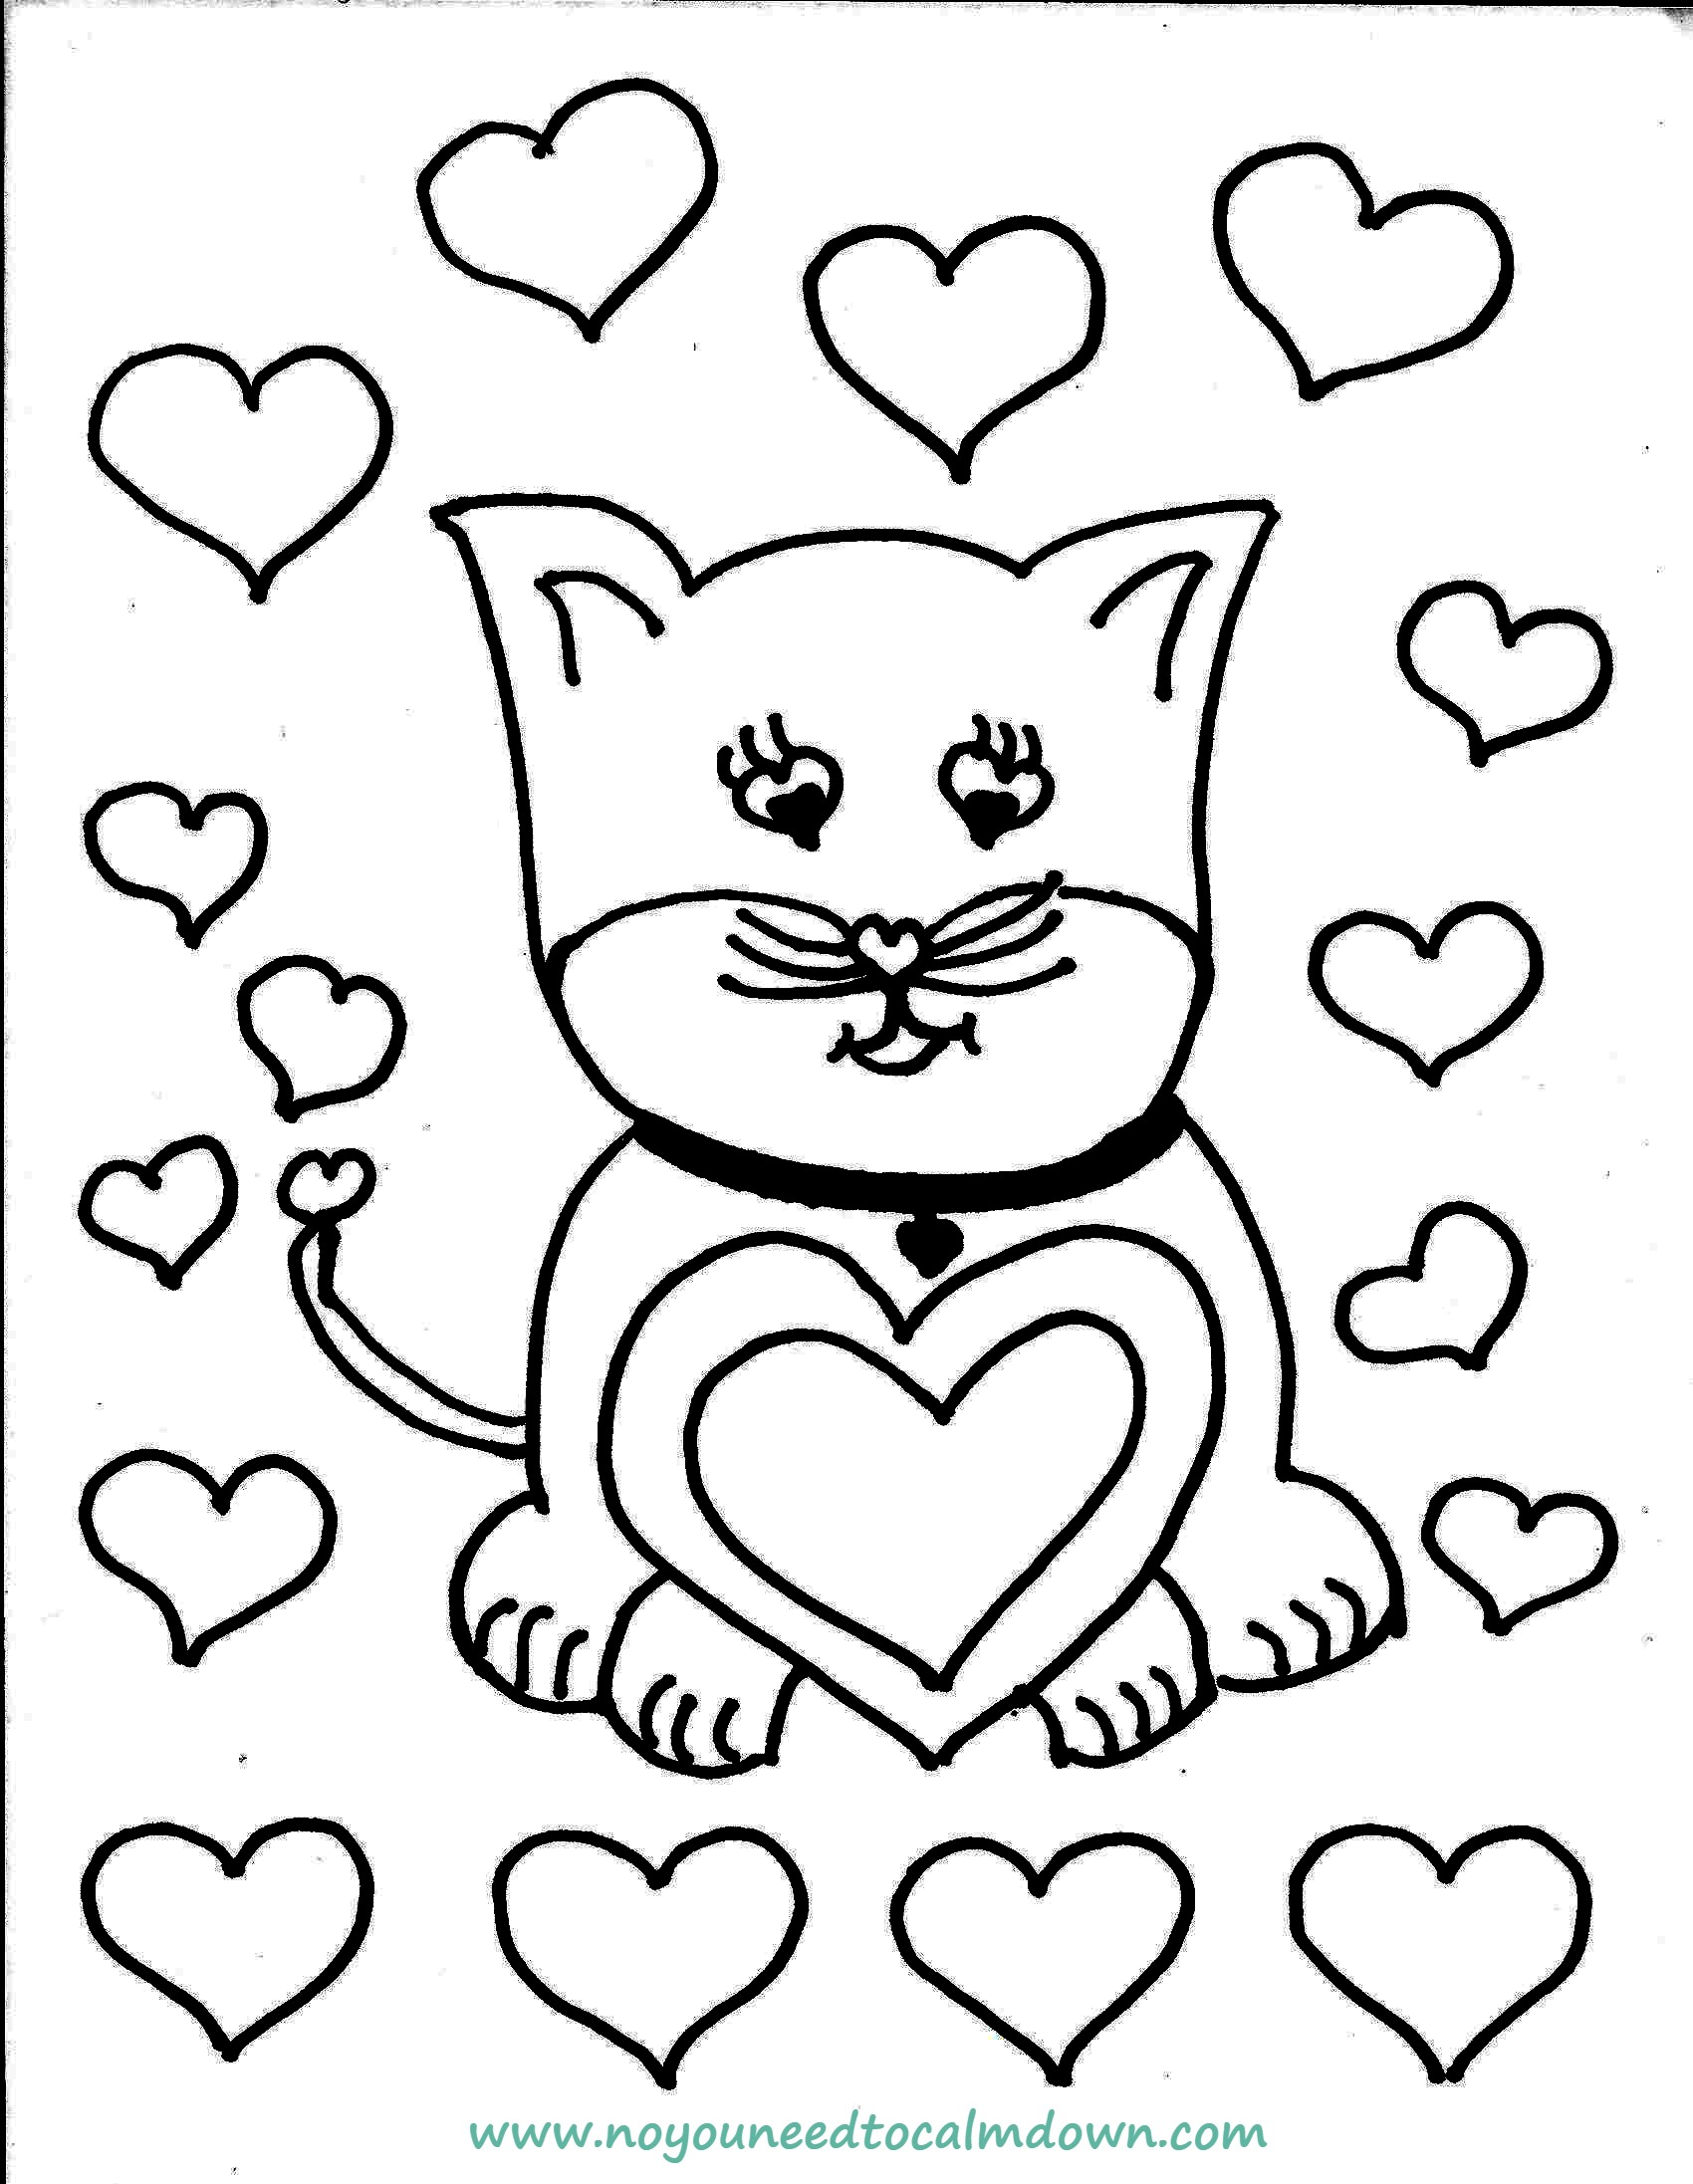 photograph about Valentine Day Coloring Pages Printable referred to as Lovely Cat Valentines Working day Coloring Site - No cost Printable No